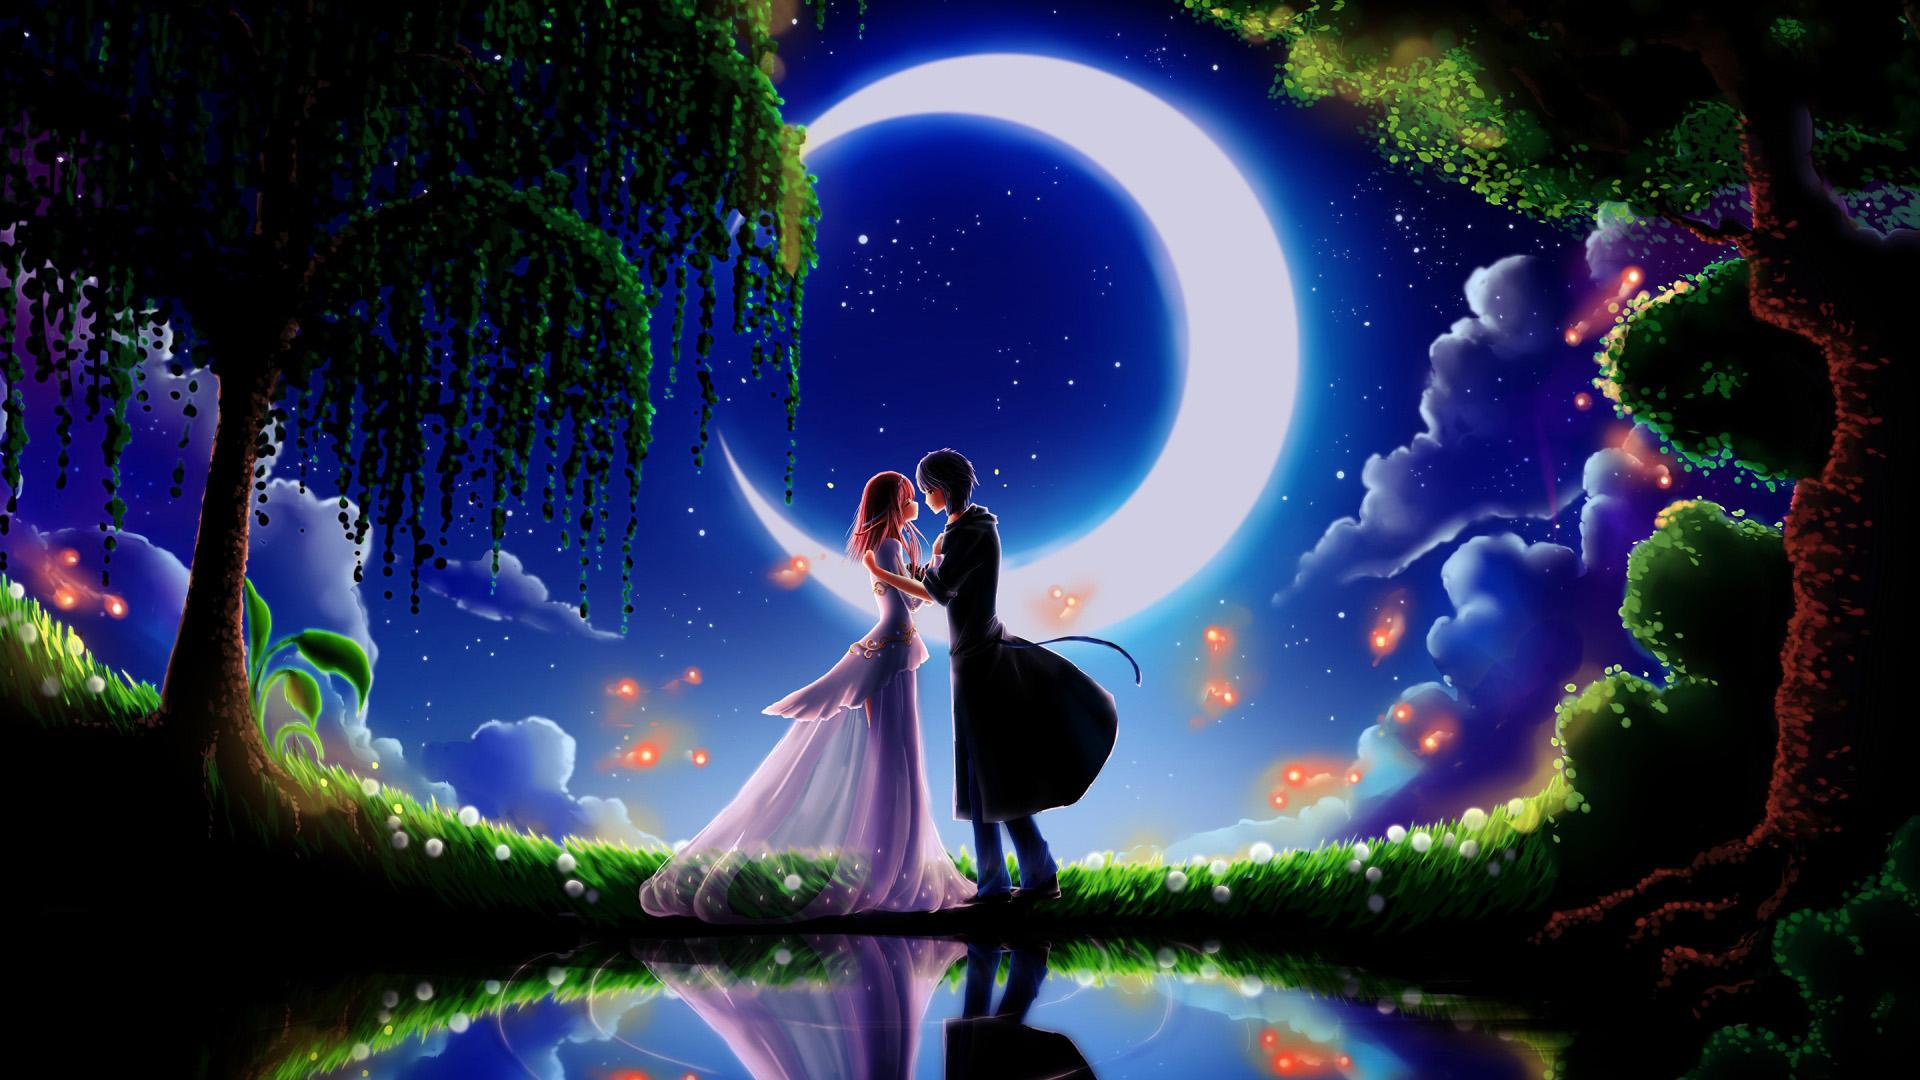 Dream wedding moonlight kiss hd  backgrounds 1920x1080 HD Wallpaper